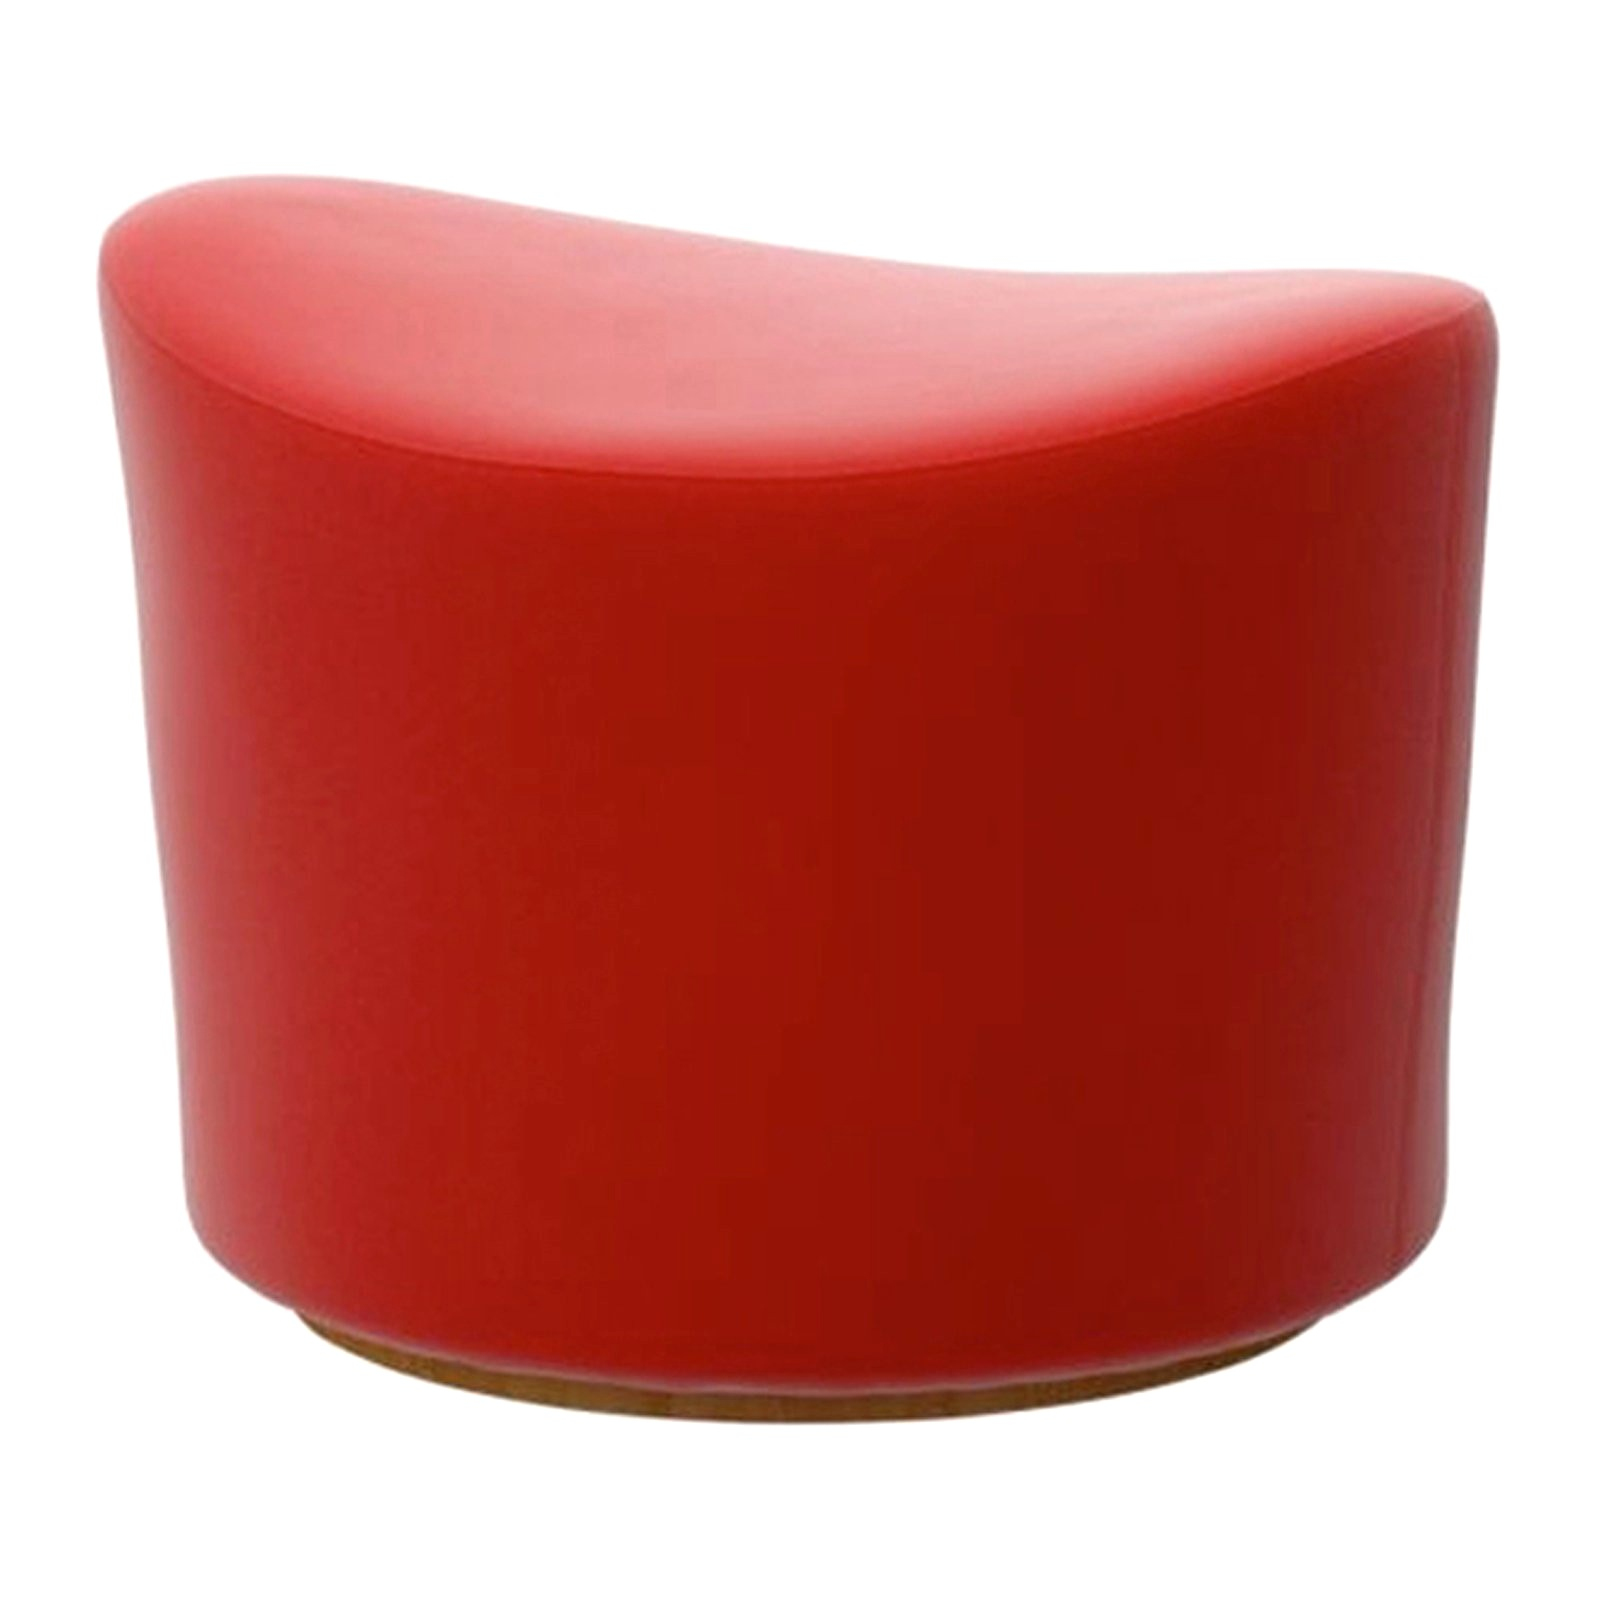 Pouf Tricot Leroy Merlin Impressionnant Photos Pouf Gonflable Ikea Pouf with Pouf Gonflable Ikea Canap Gonflable